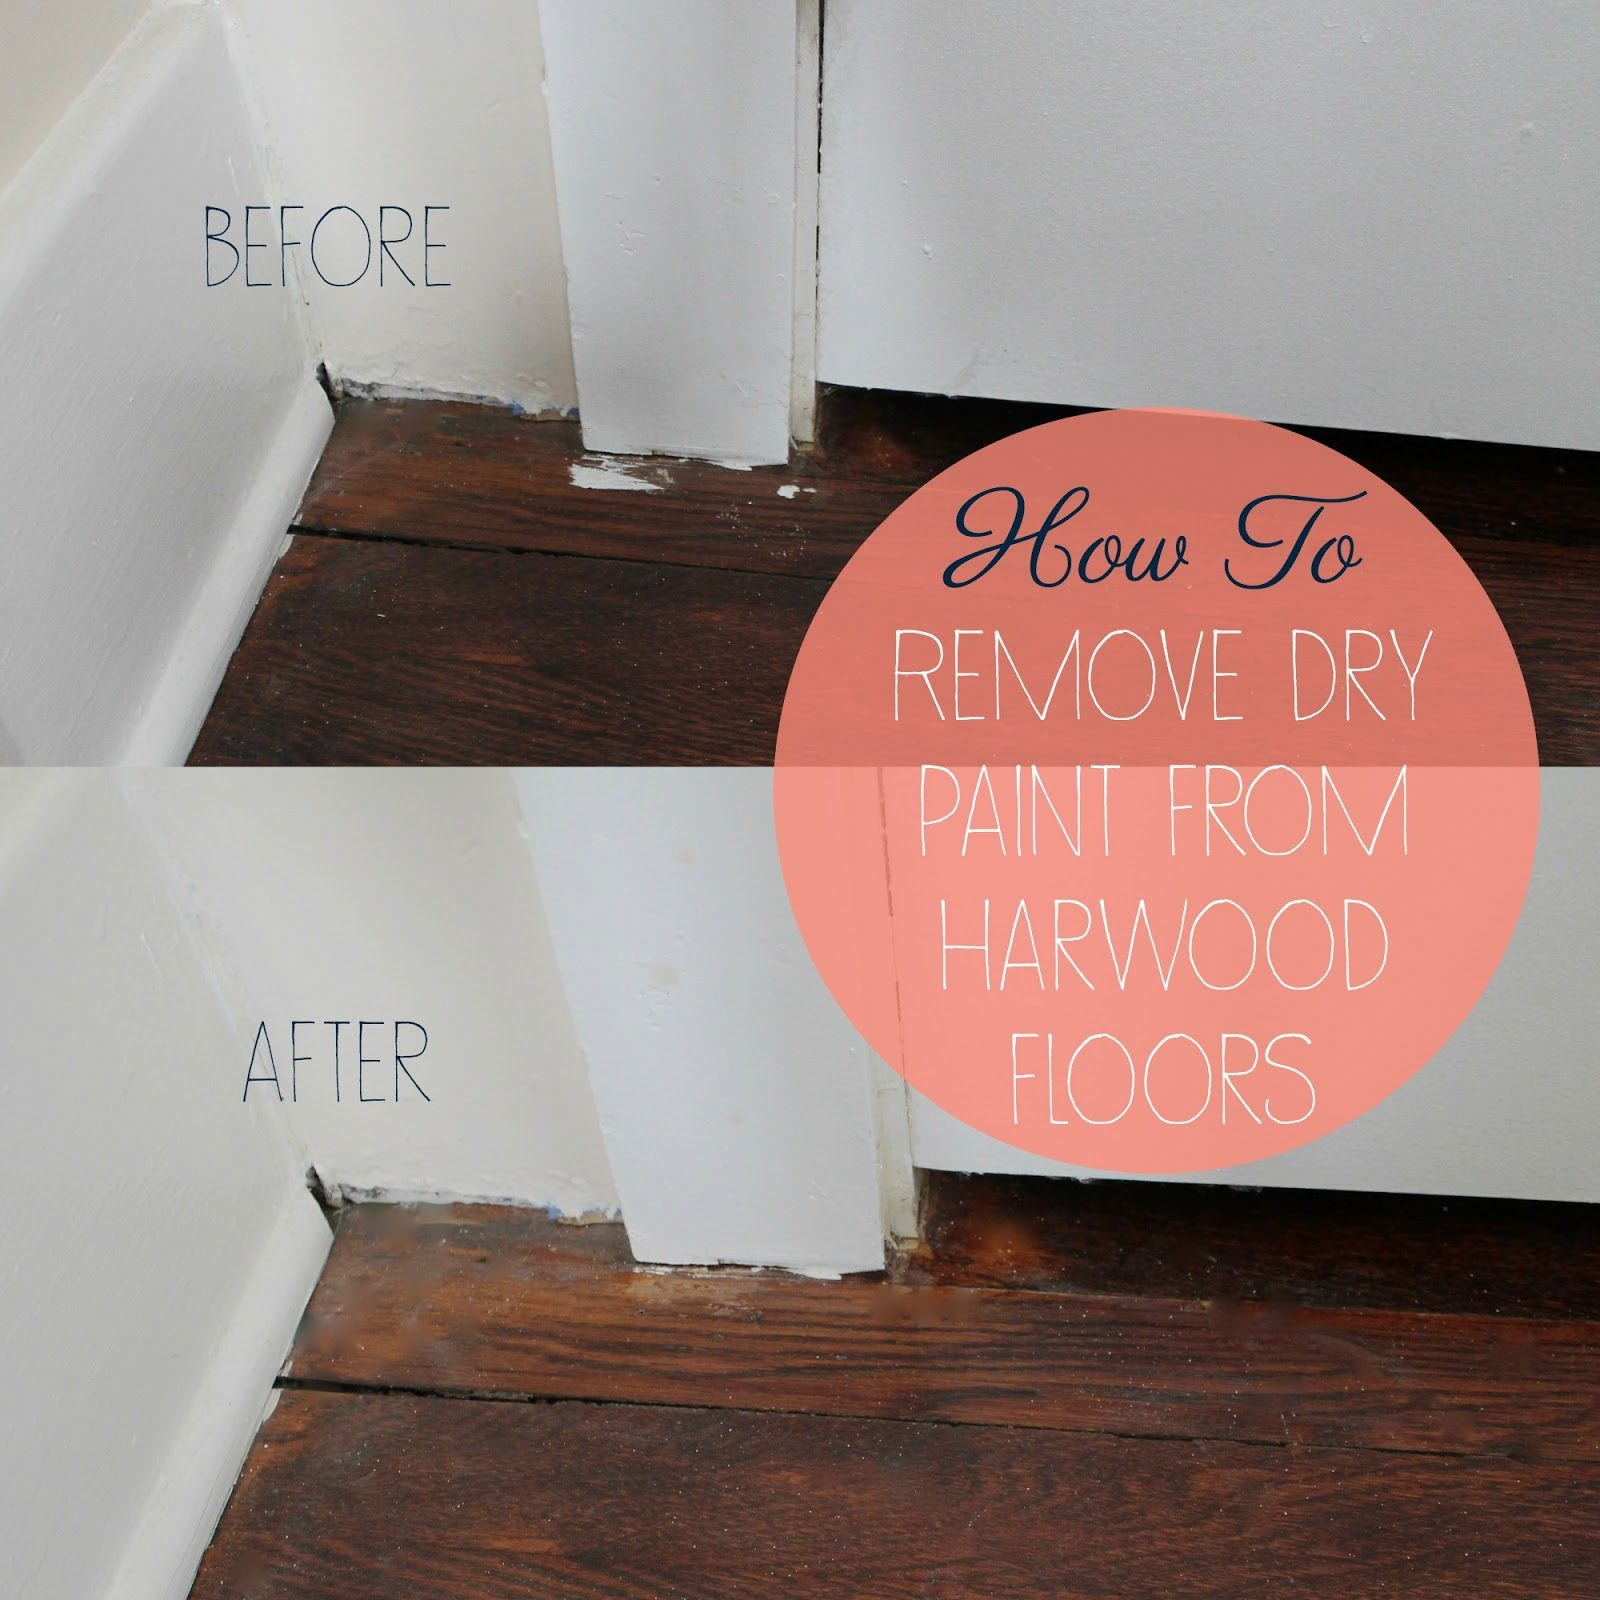 How To Remove Dry Paint From Hardwood Floors. Painted